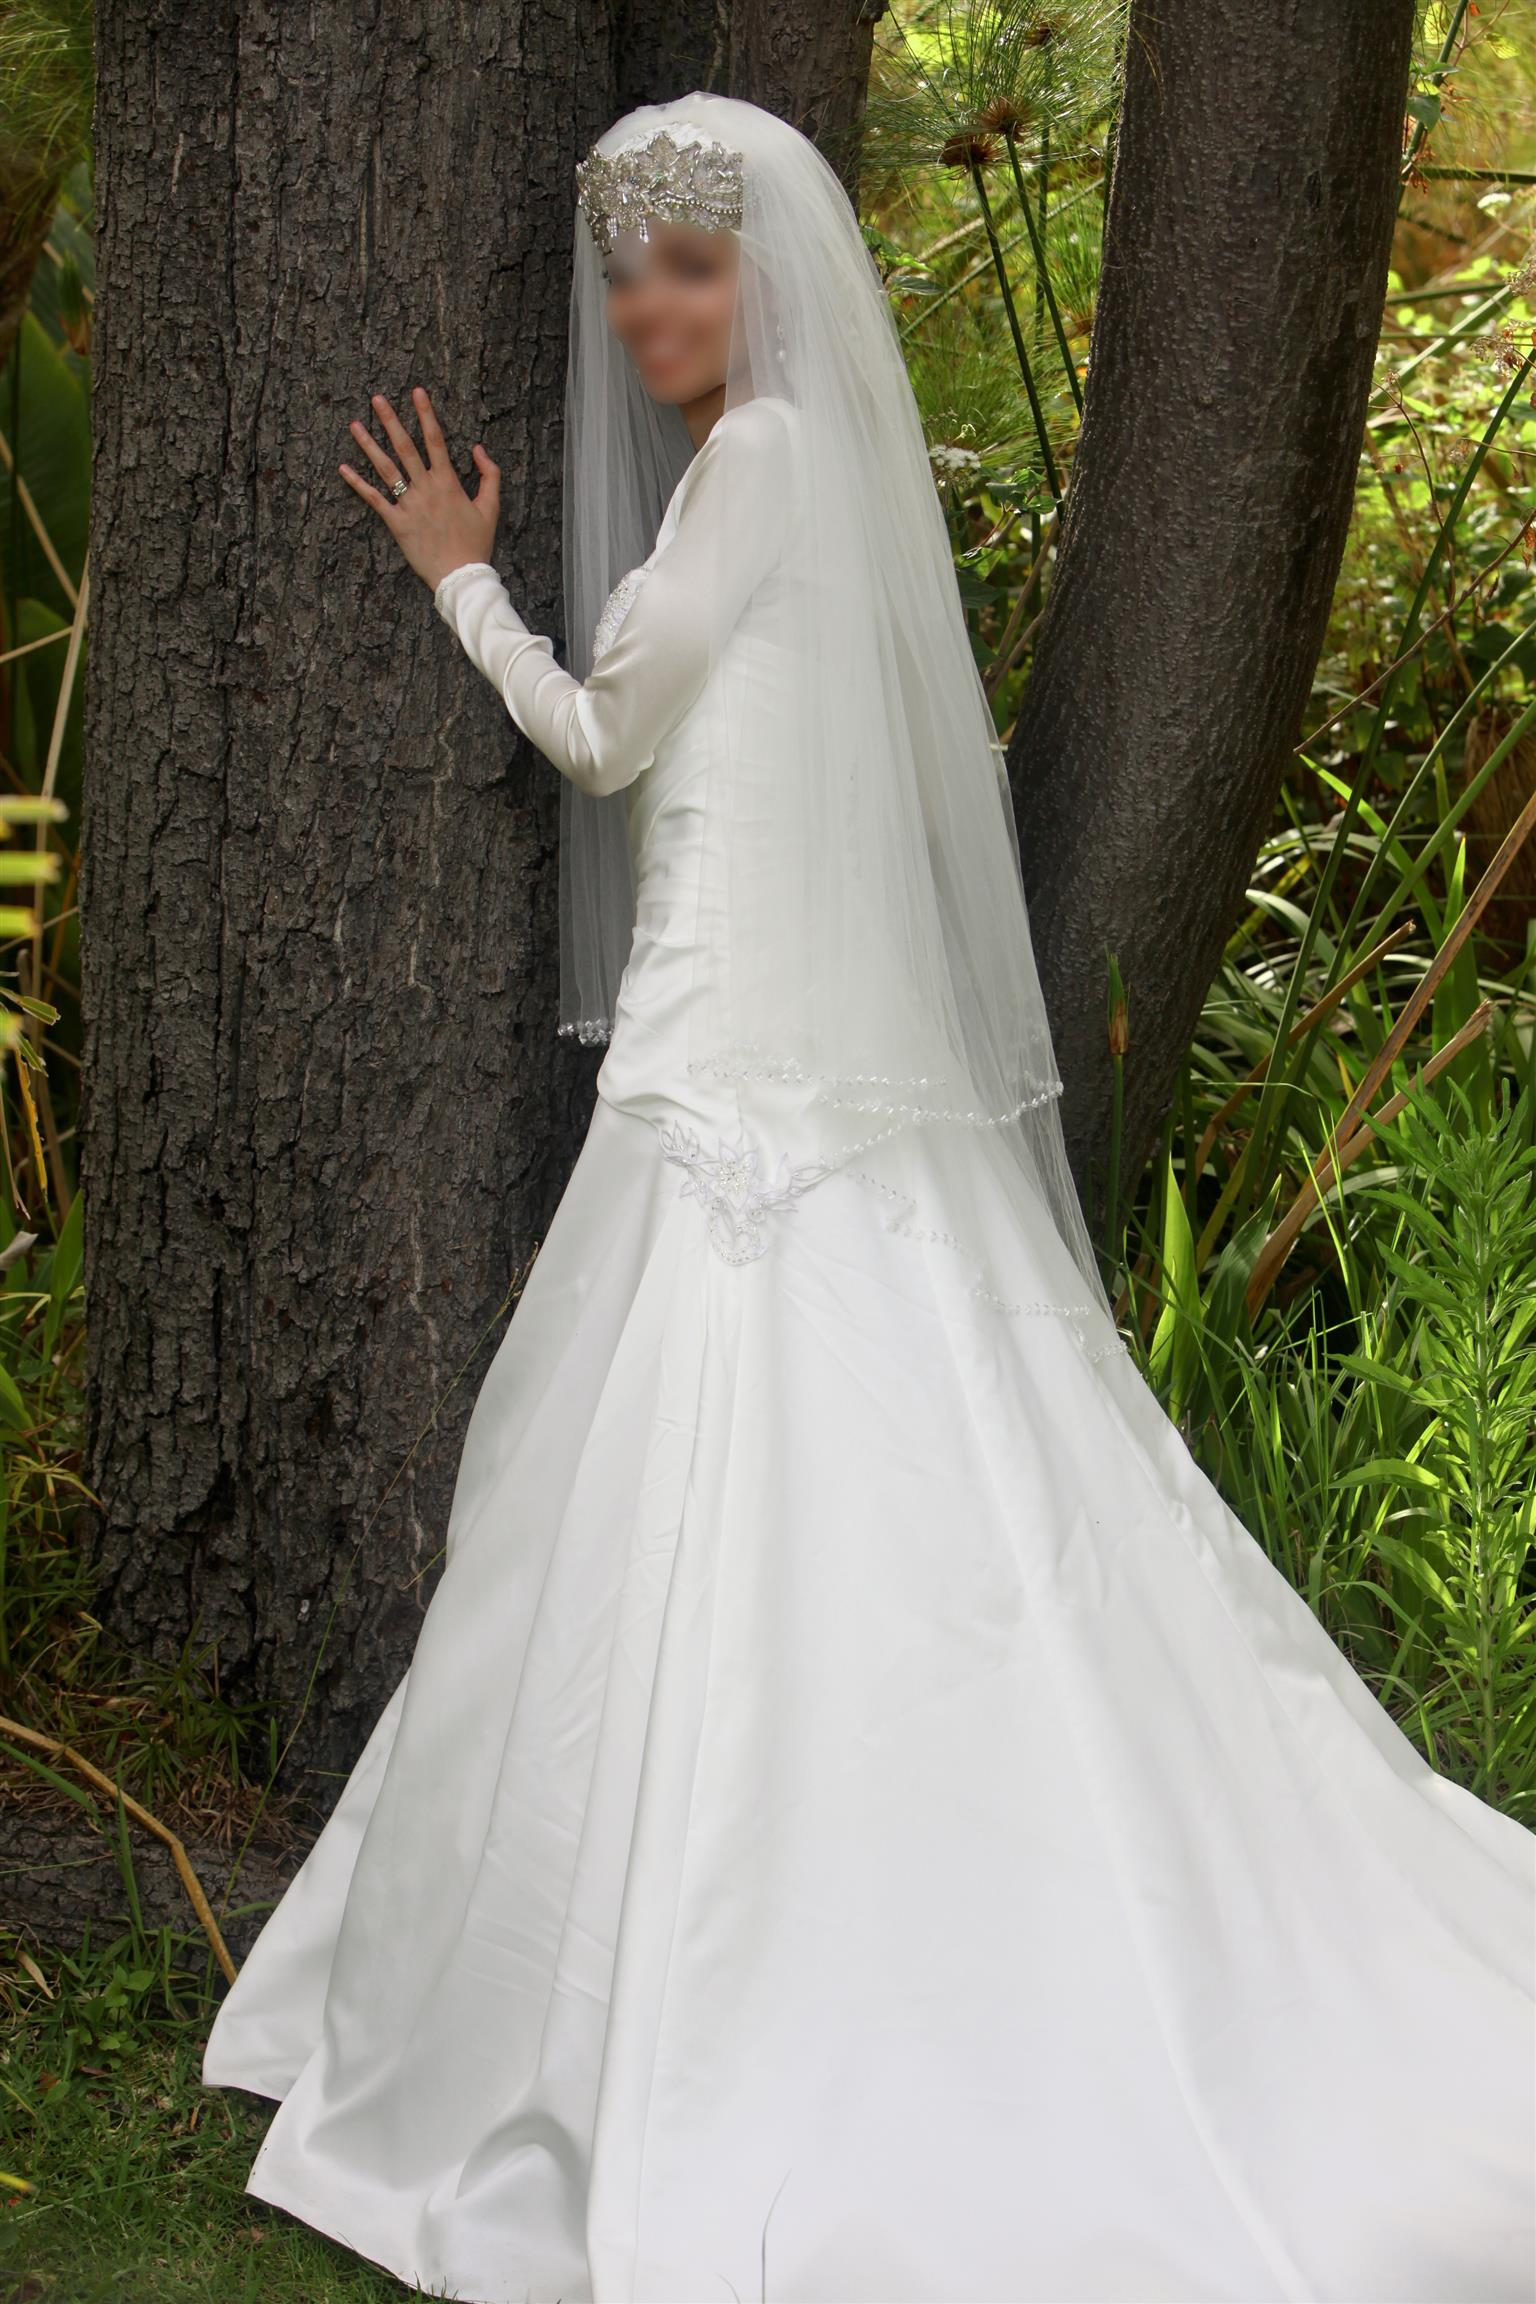 White Wedding Dress & Indian Wedding Dress For Hire | Junk Mail